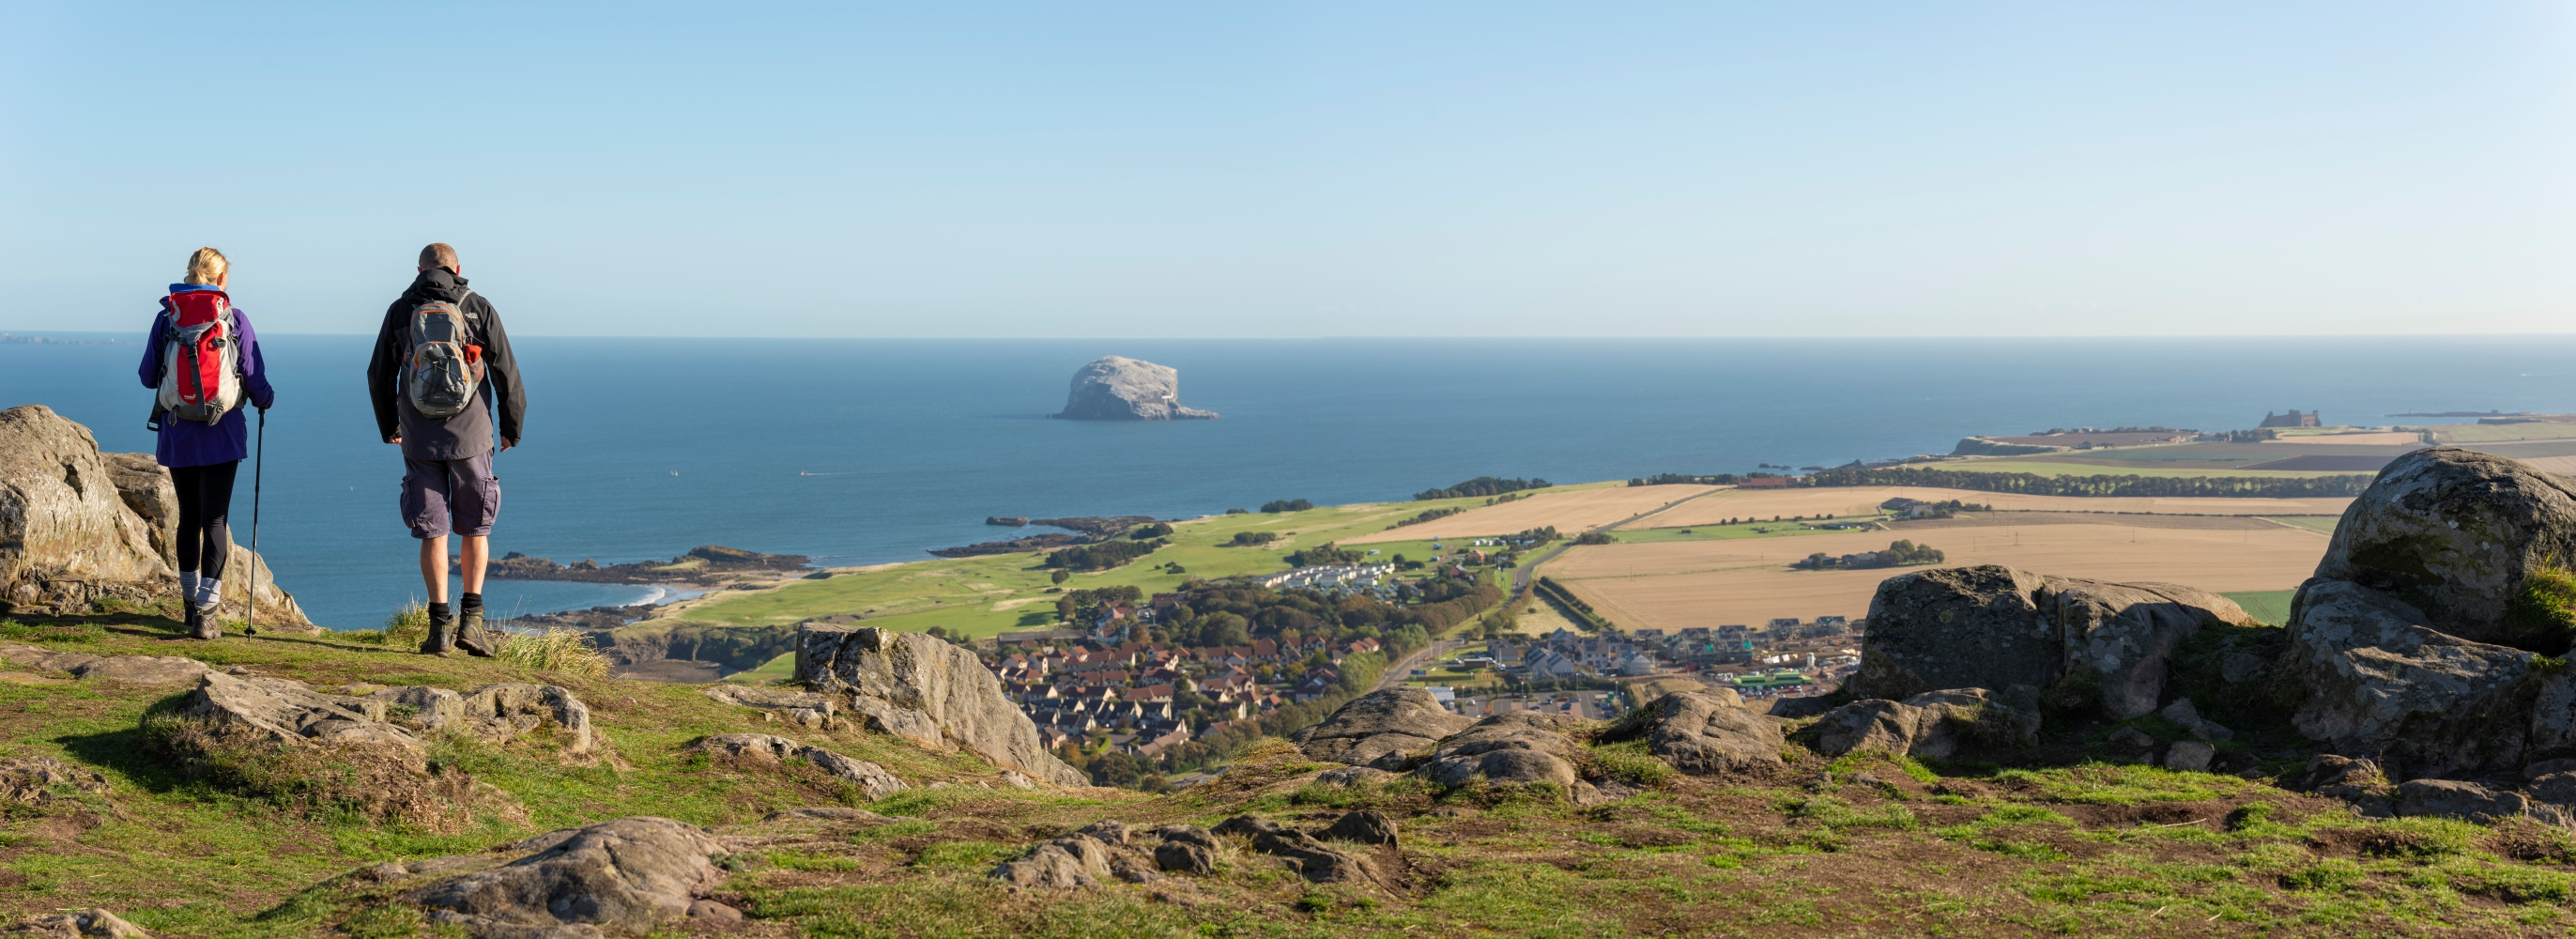 S10 North Berwick Law view pano